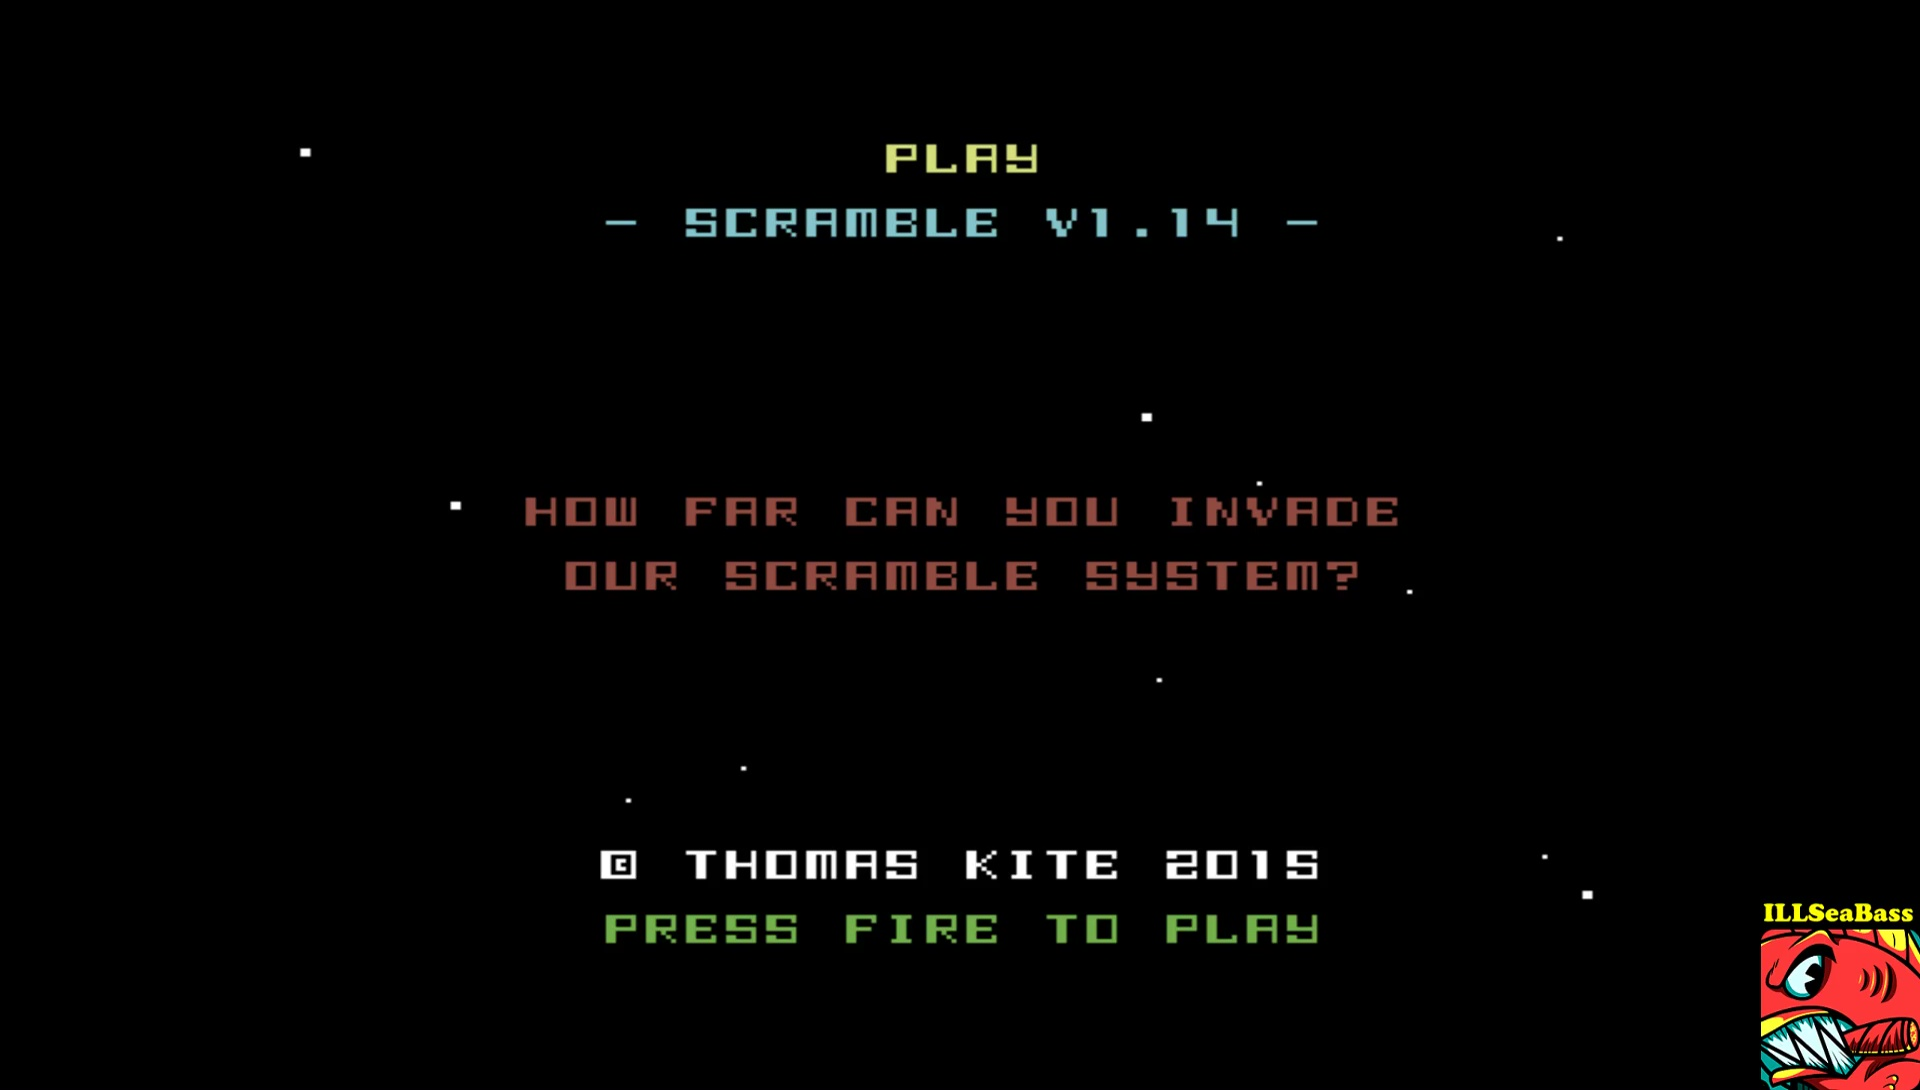 ILLSeaBass: Scramble 2015 [V1.14] (Commodore 64 Emulated) 29,470 points on 2017-06-02 22:16:51